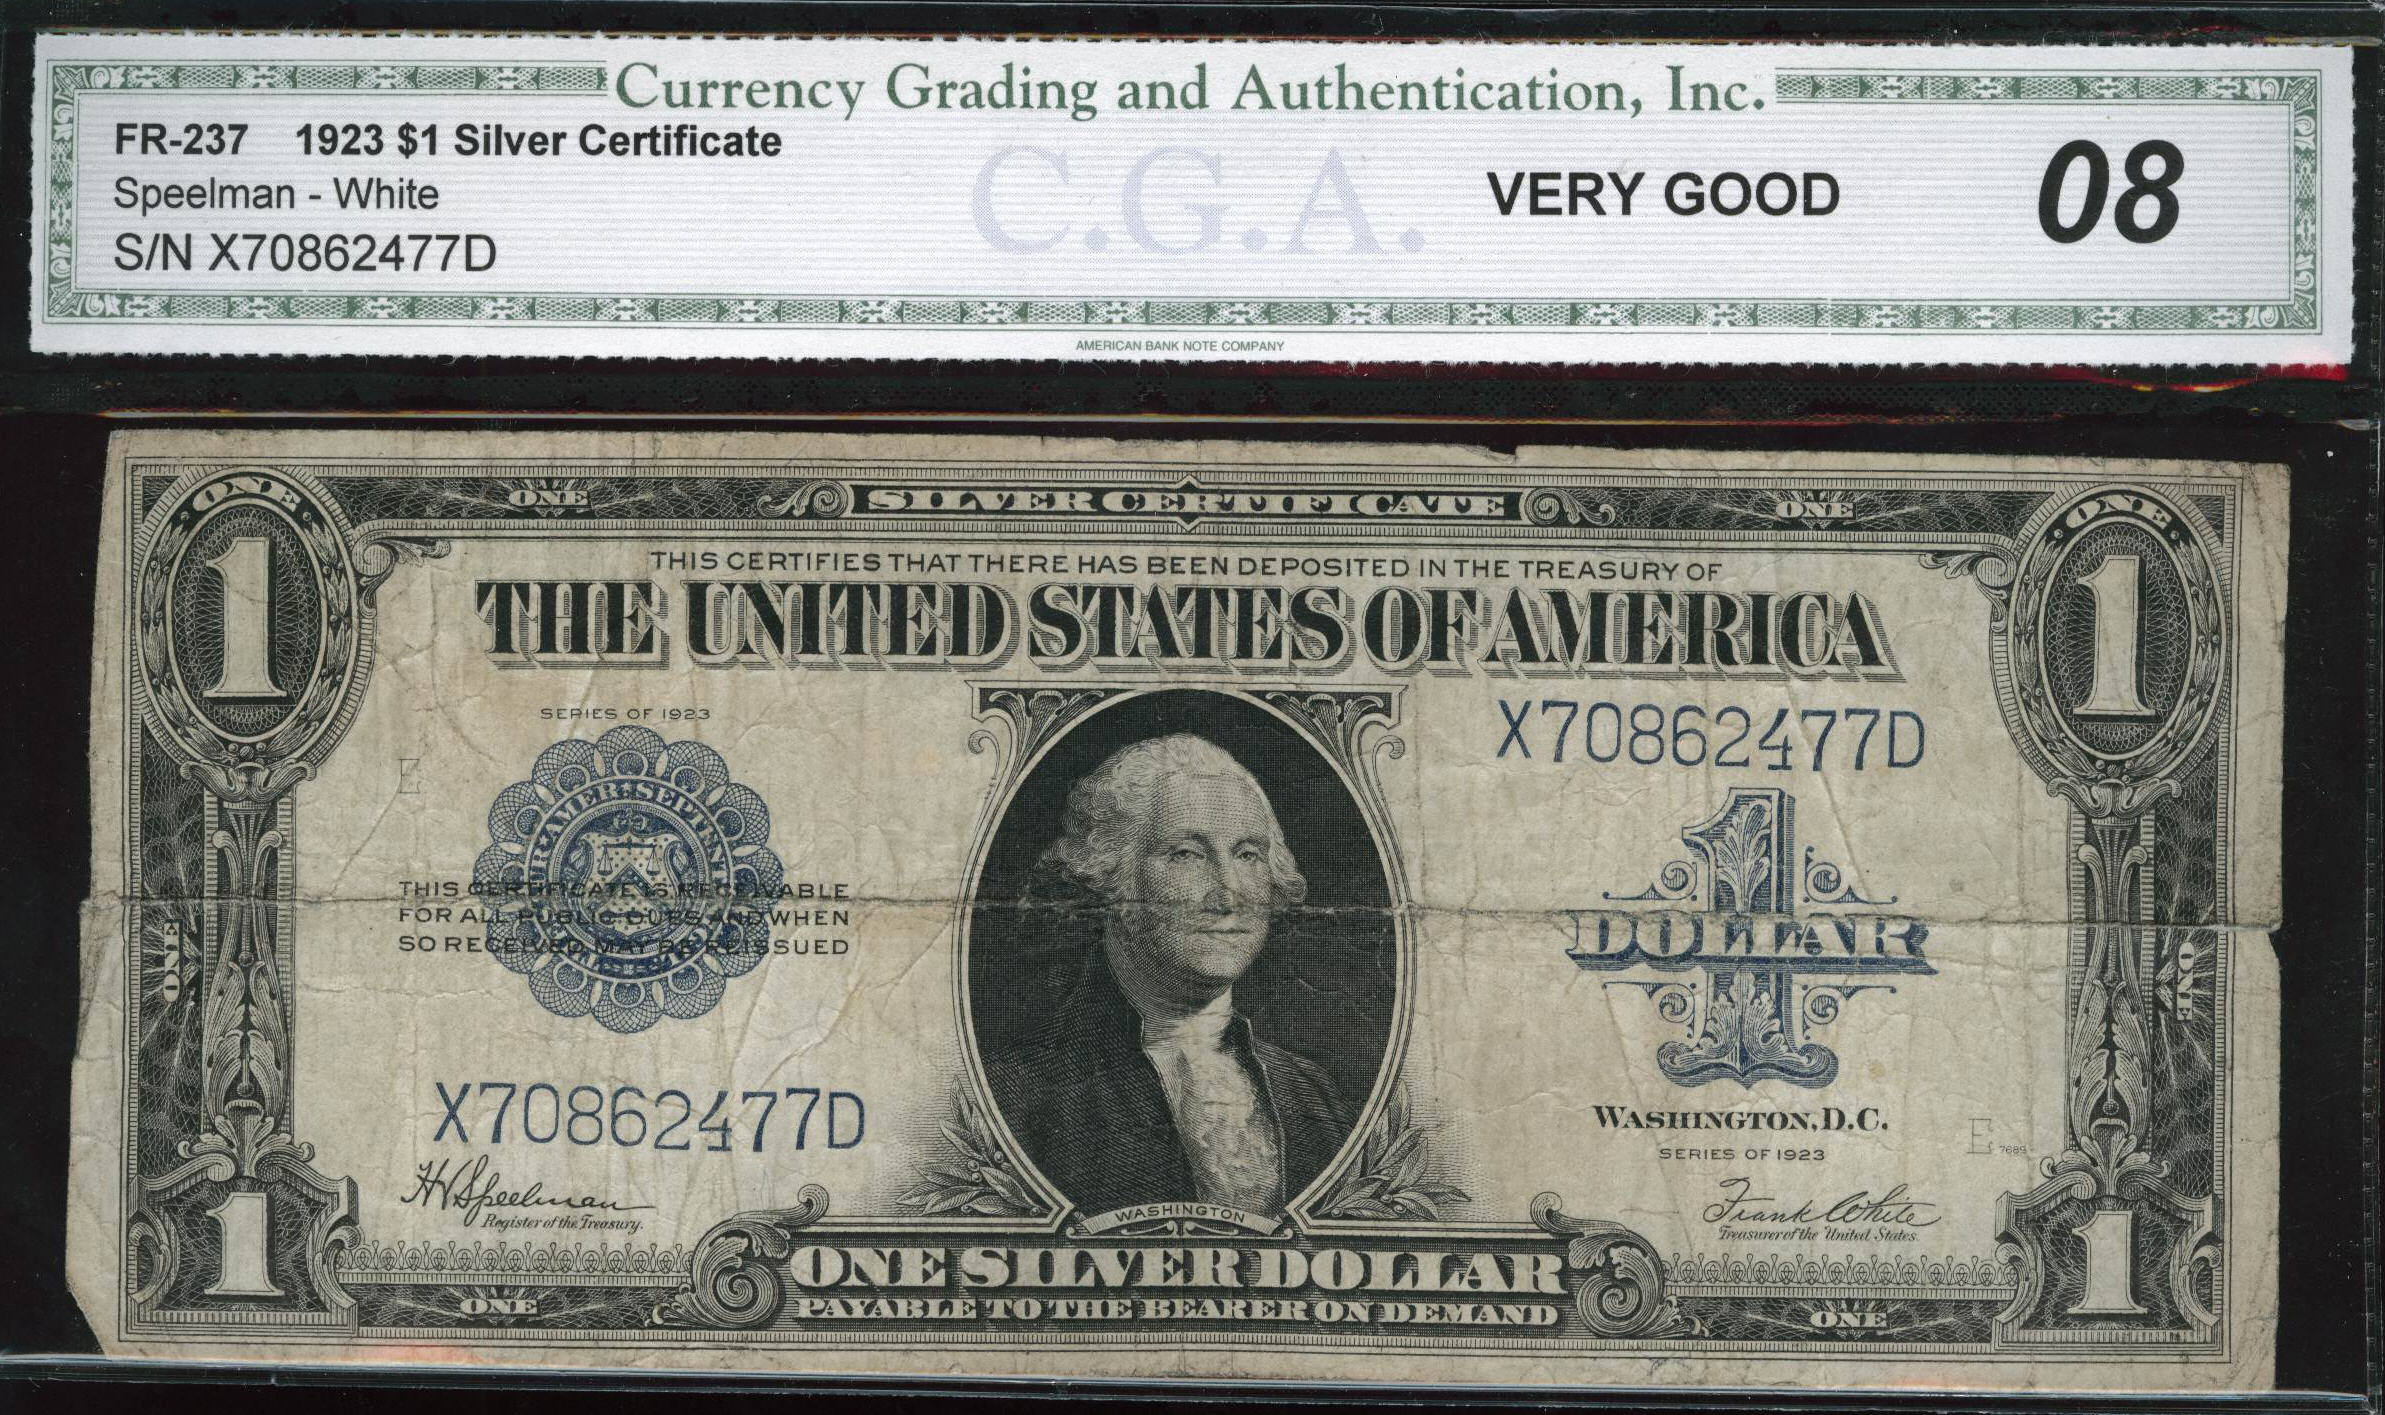 Acc certified currency notes 1923 very good 08 100 bill cga silver certificate 1betcityfo Images